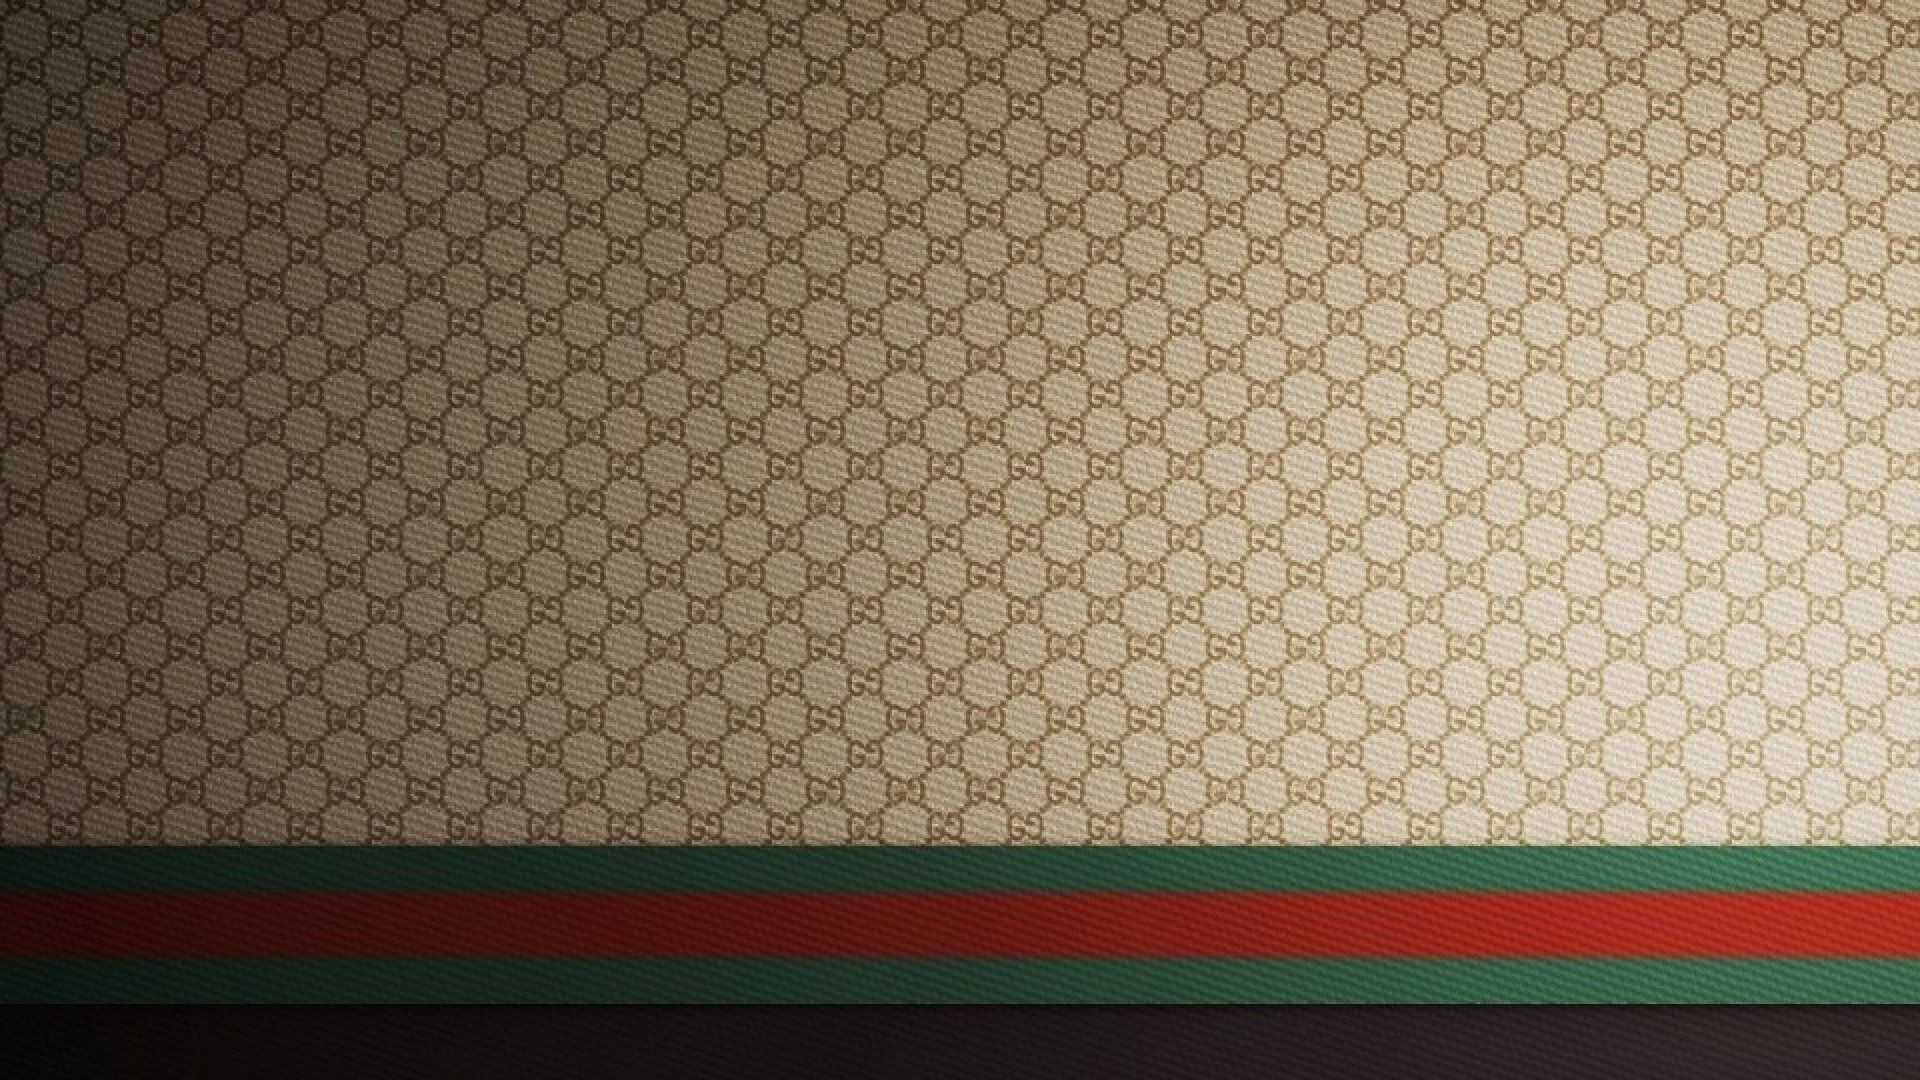 Gucci Logo Wallpaper 63 Images HD Wallpapers Download Free Images Wallpaper [1000image.com]